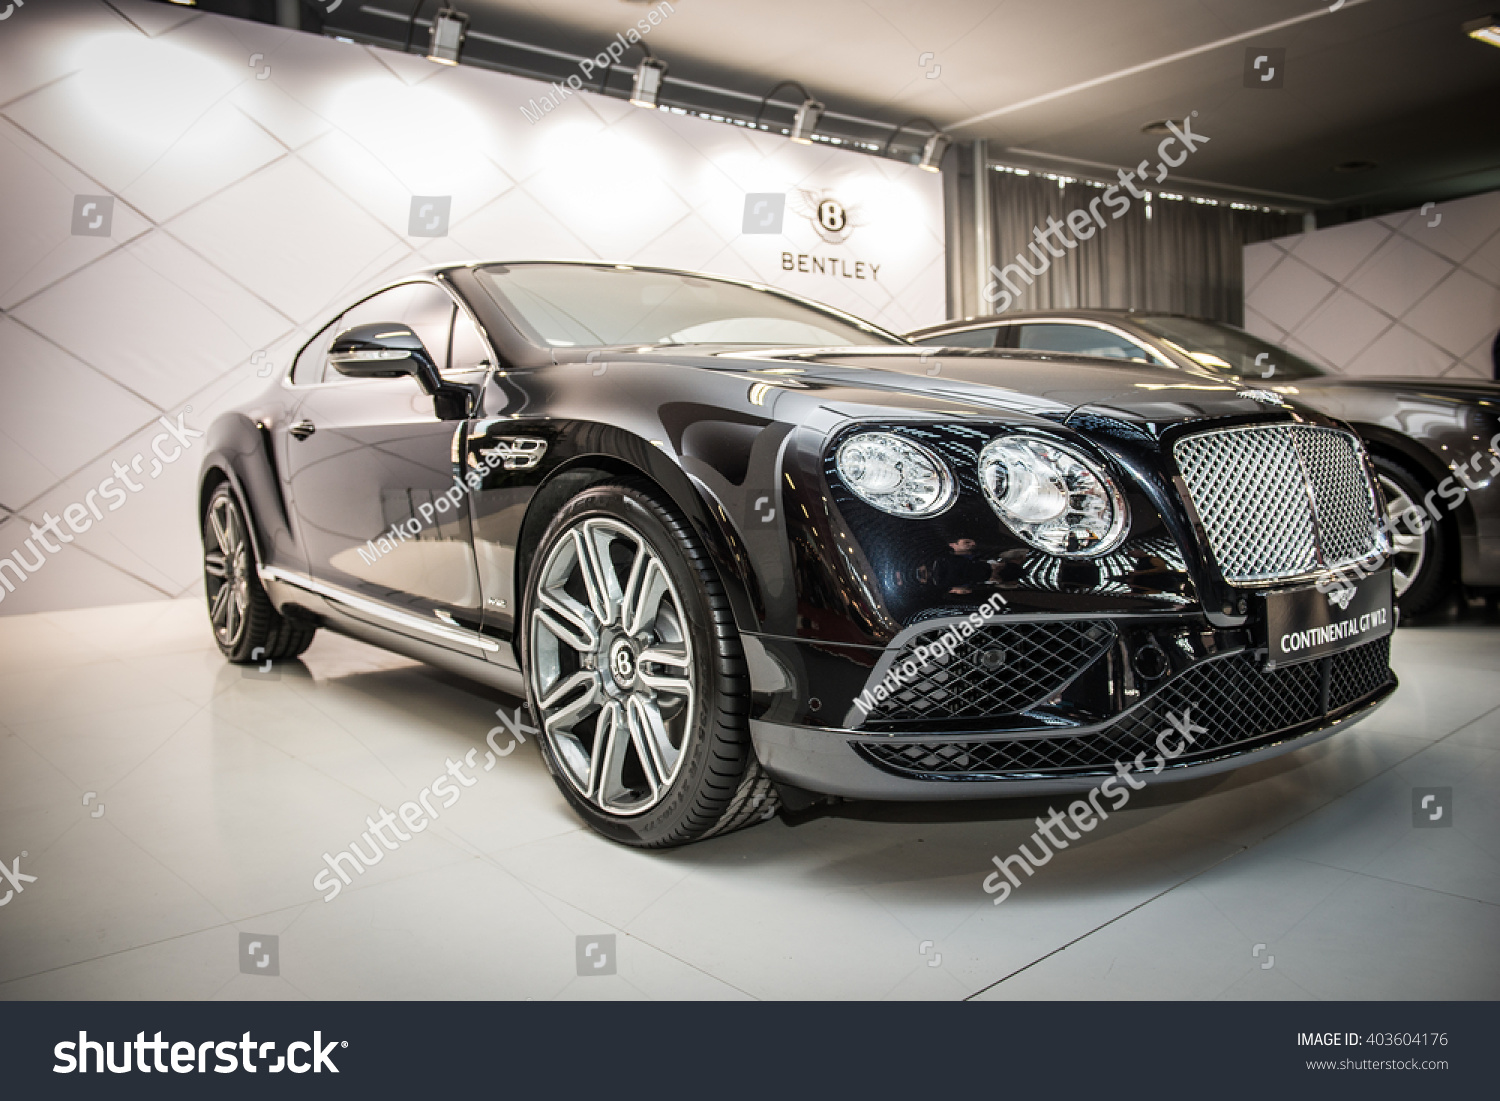 Belgrade Serbia March 17 2016 Bentley Stock Photo Edit Now Continental Audio Wiring Presented At Ddor Bg Carshow